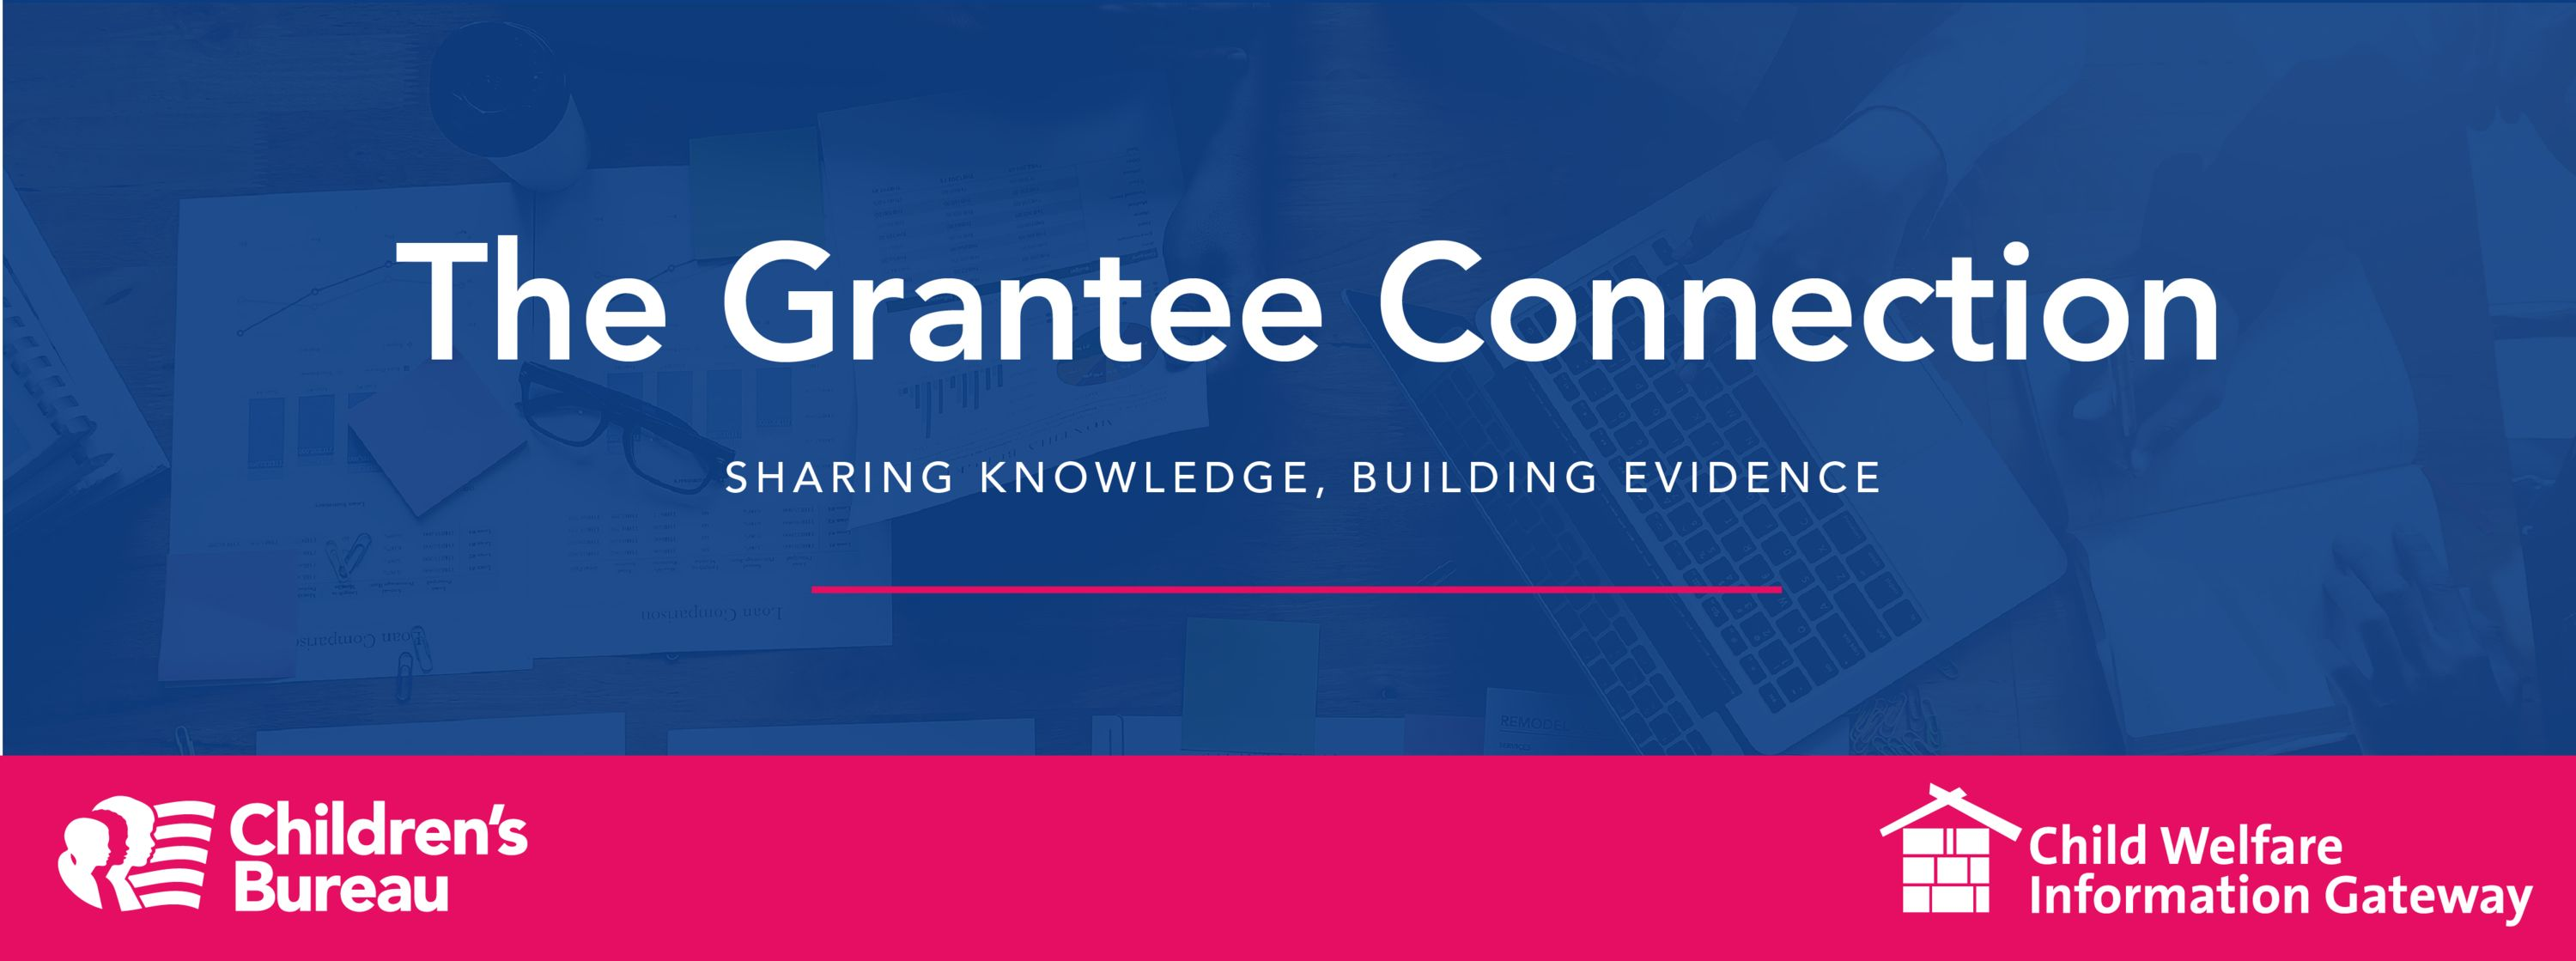 The Grantee Connection: Sharing Knowledge, Building Evidence